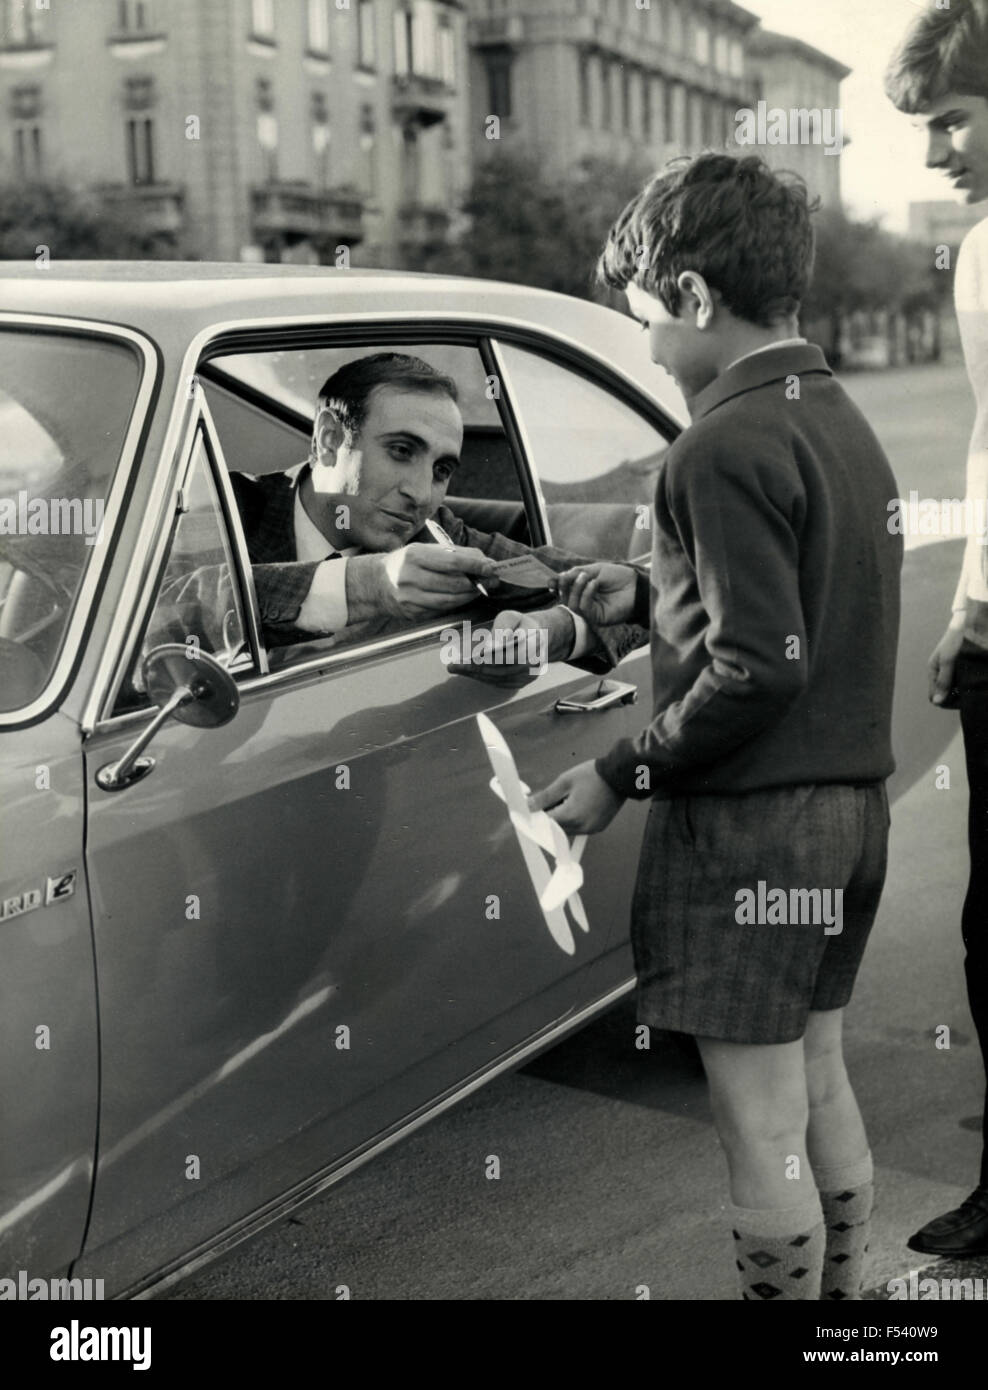 The Italian presenter Pippo Baudo signs an autograph for a child - Stock Image